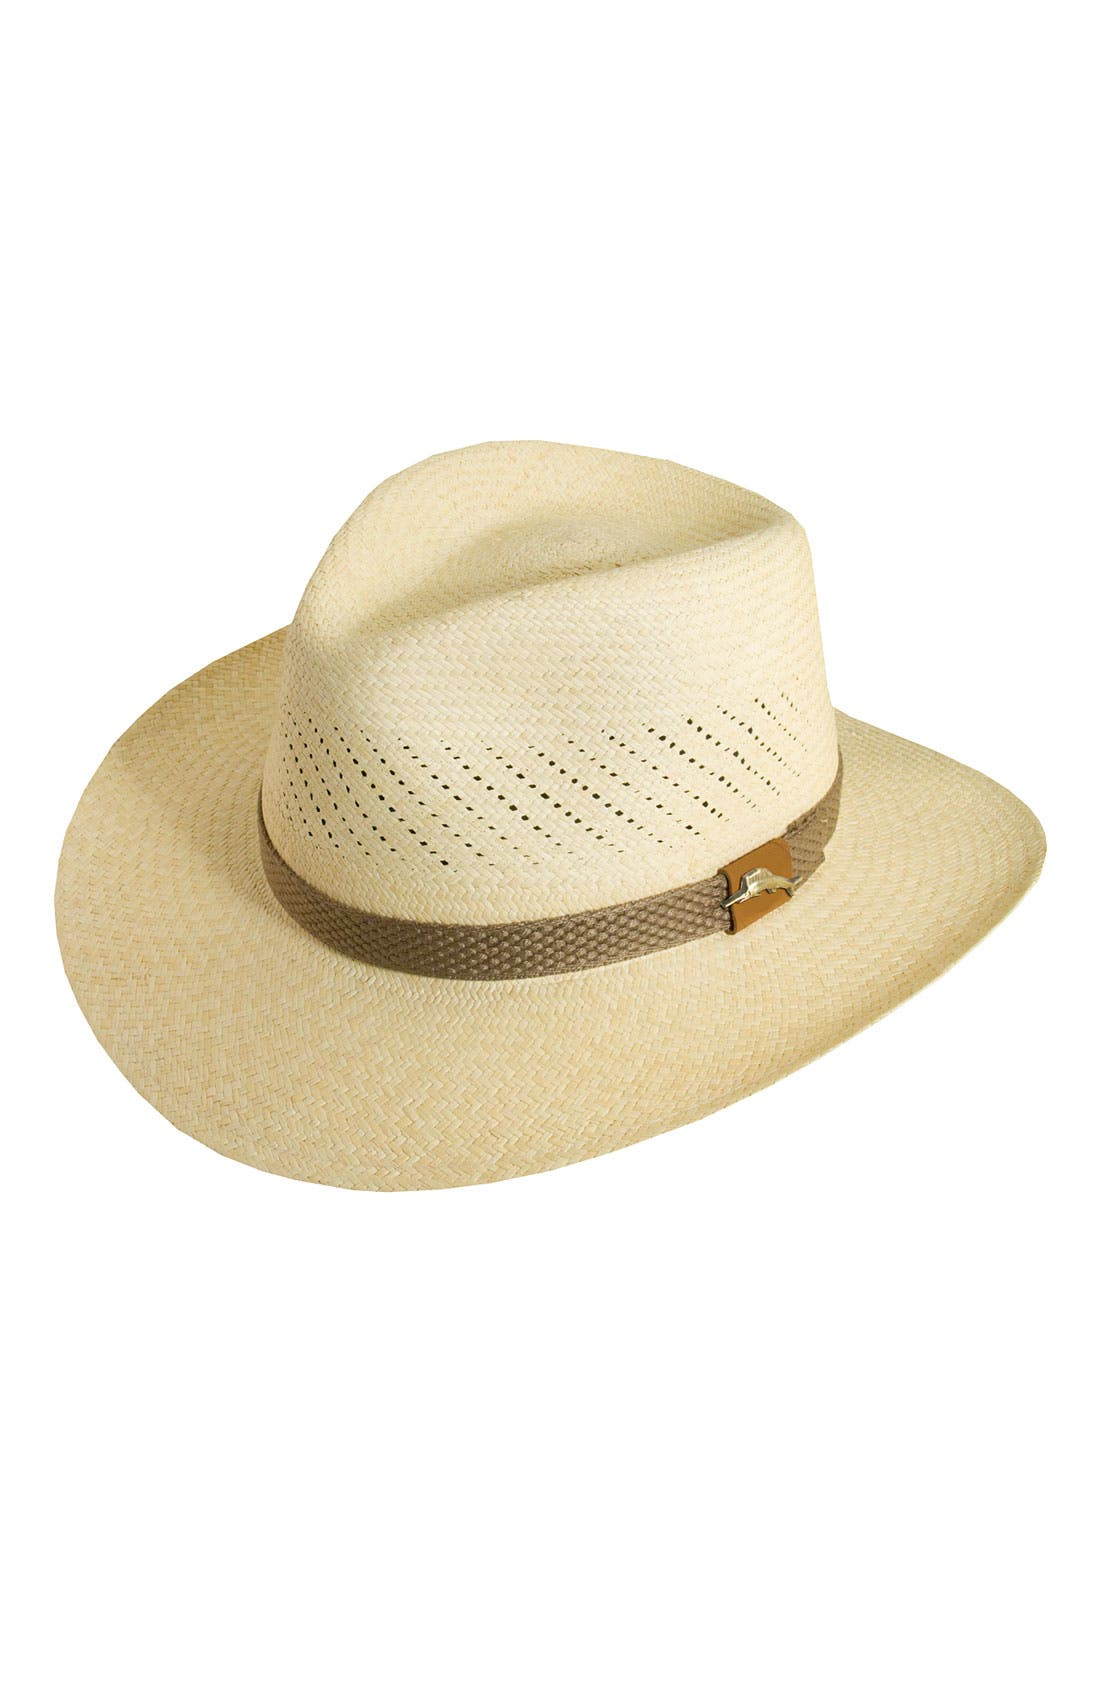 Alternate Image 1 Selected - Tommy Bahama Safari Panama Straw Fedora